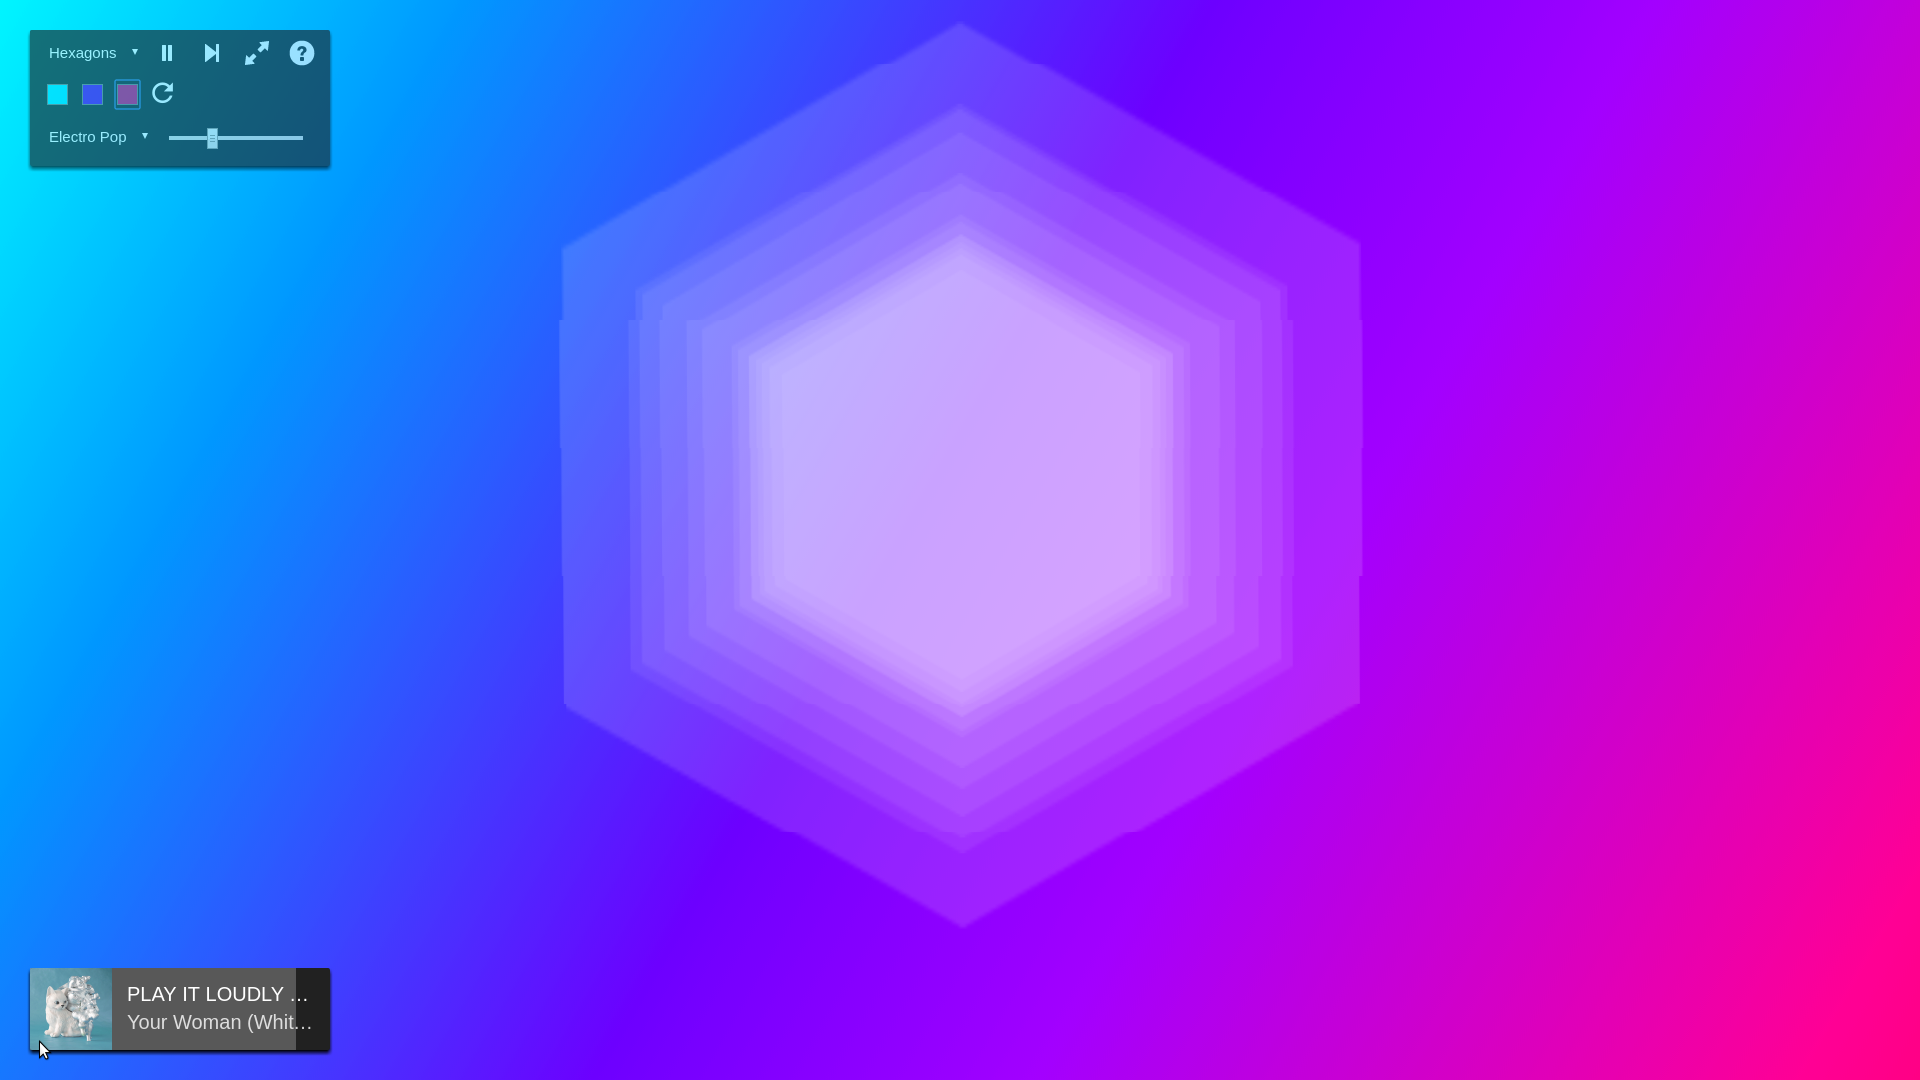 CSS Visualizer - Hexagon Mode